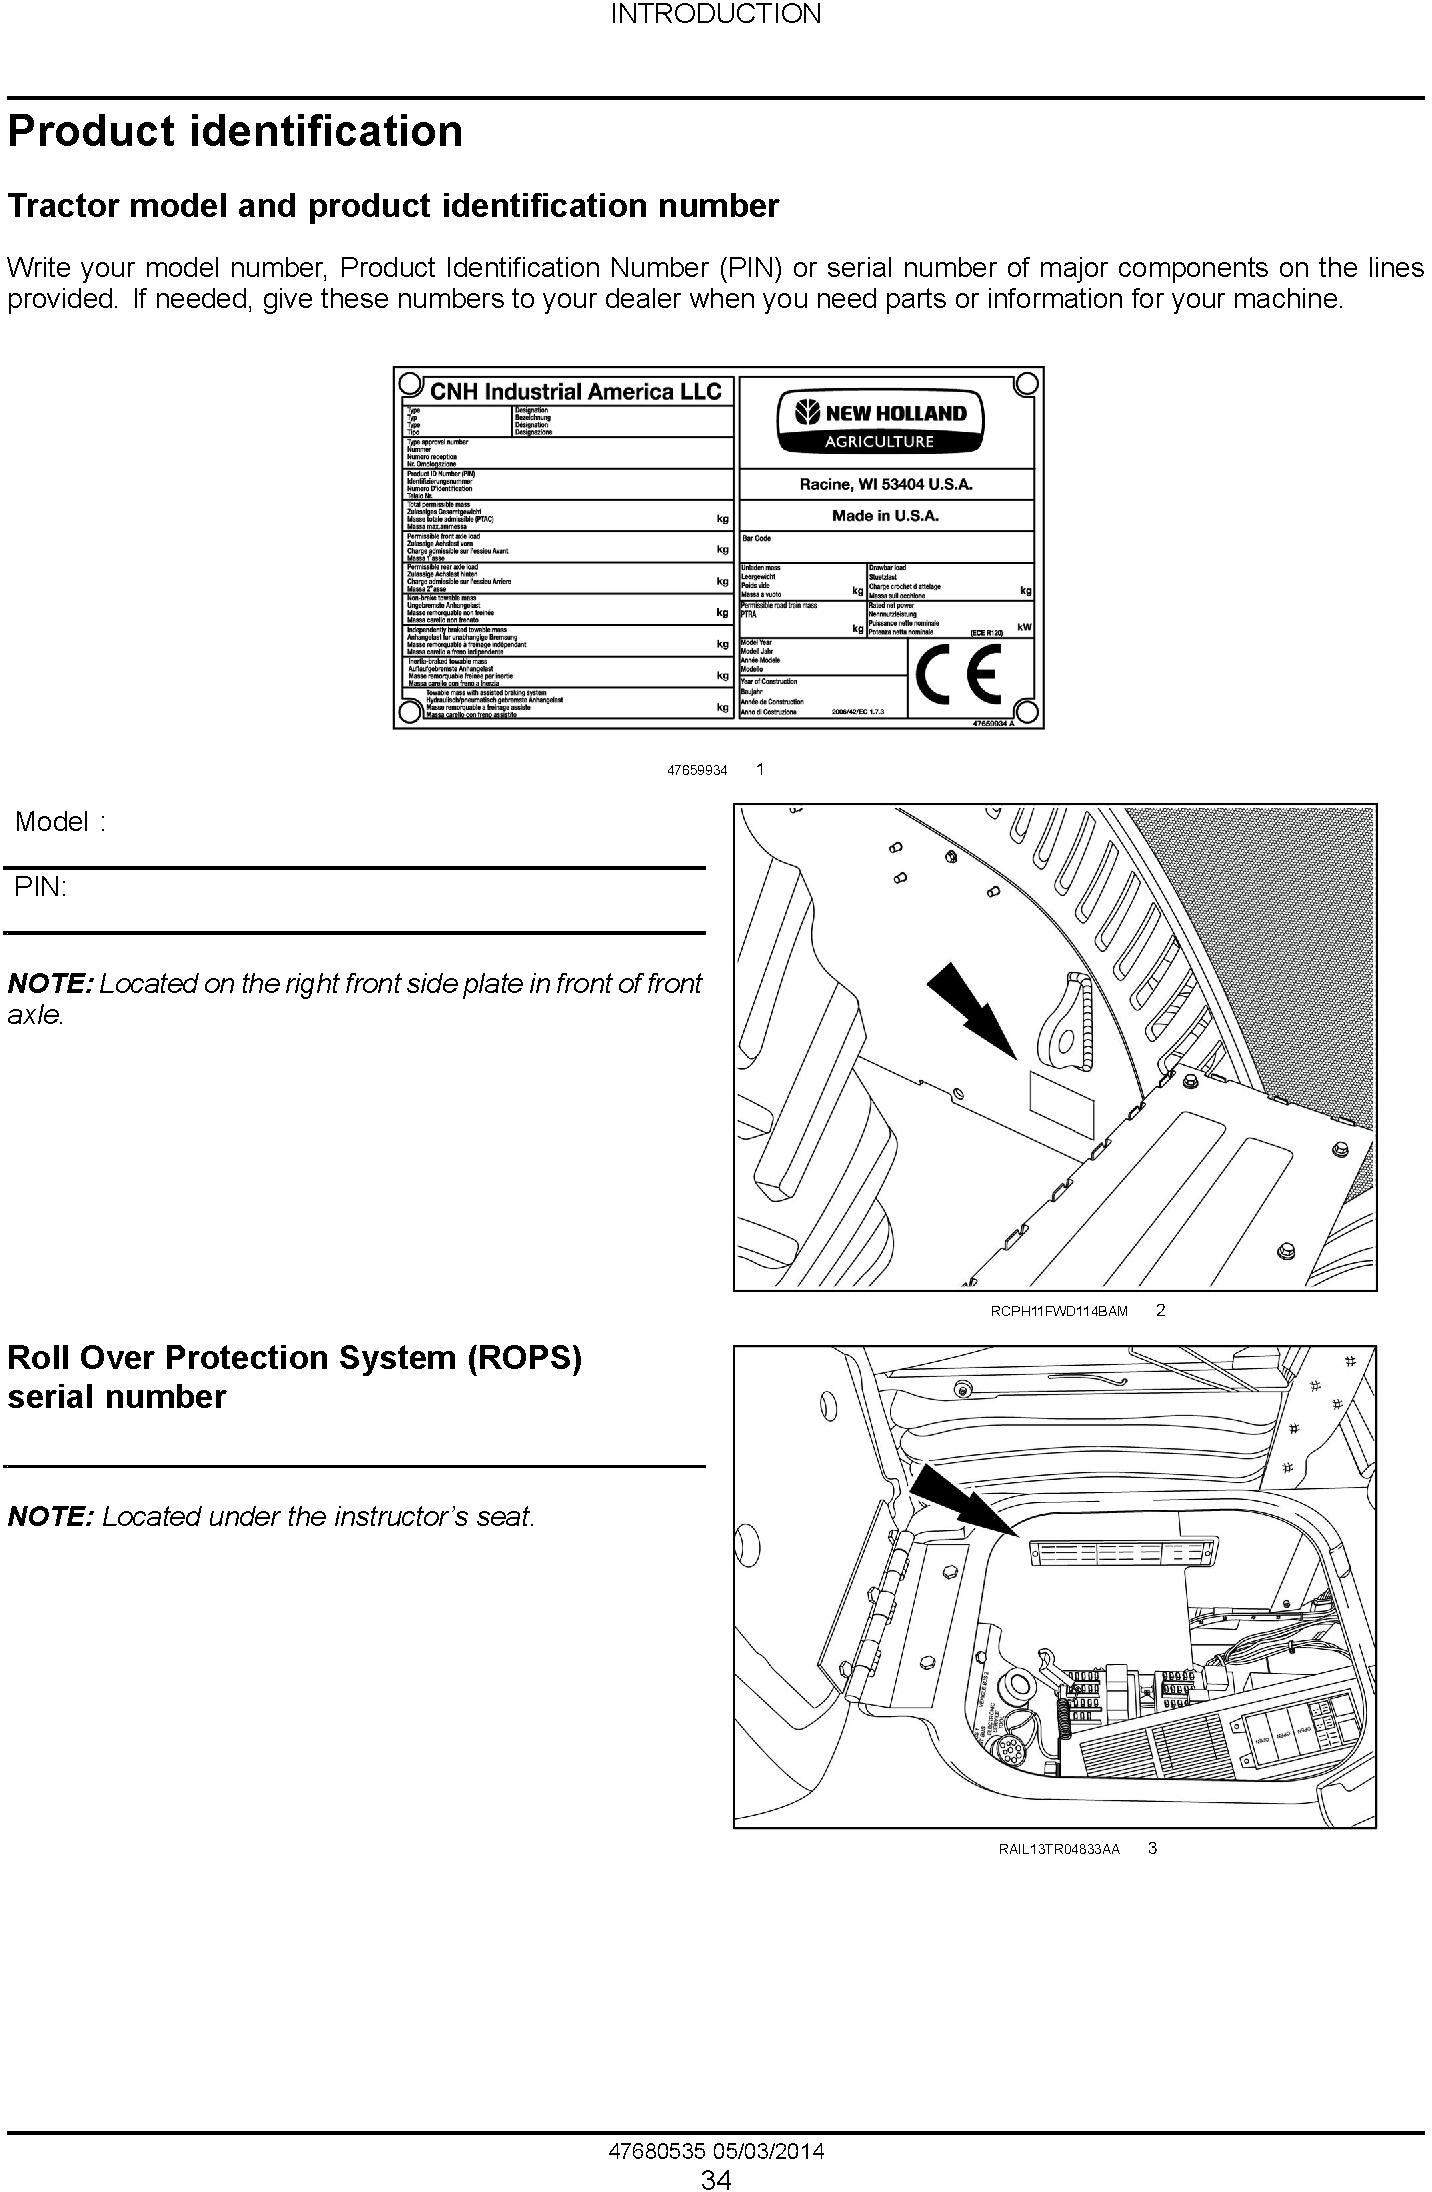 New Holland T9.435, T9.480, T9.530, T9.565, T9.600, T9.645, T9.700 European Tractor Service Manual - 1